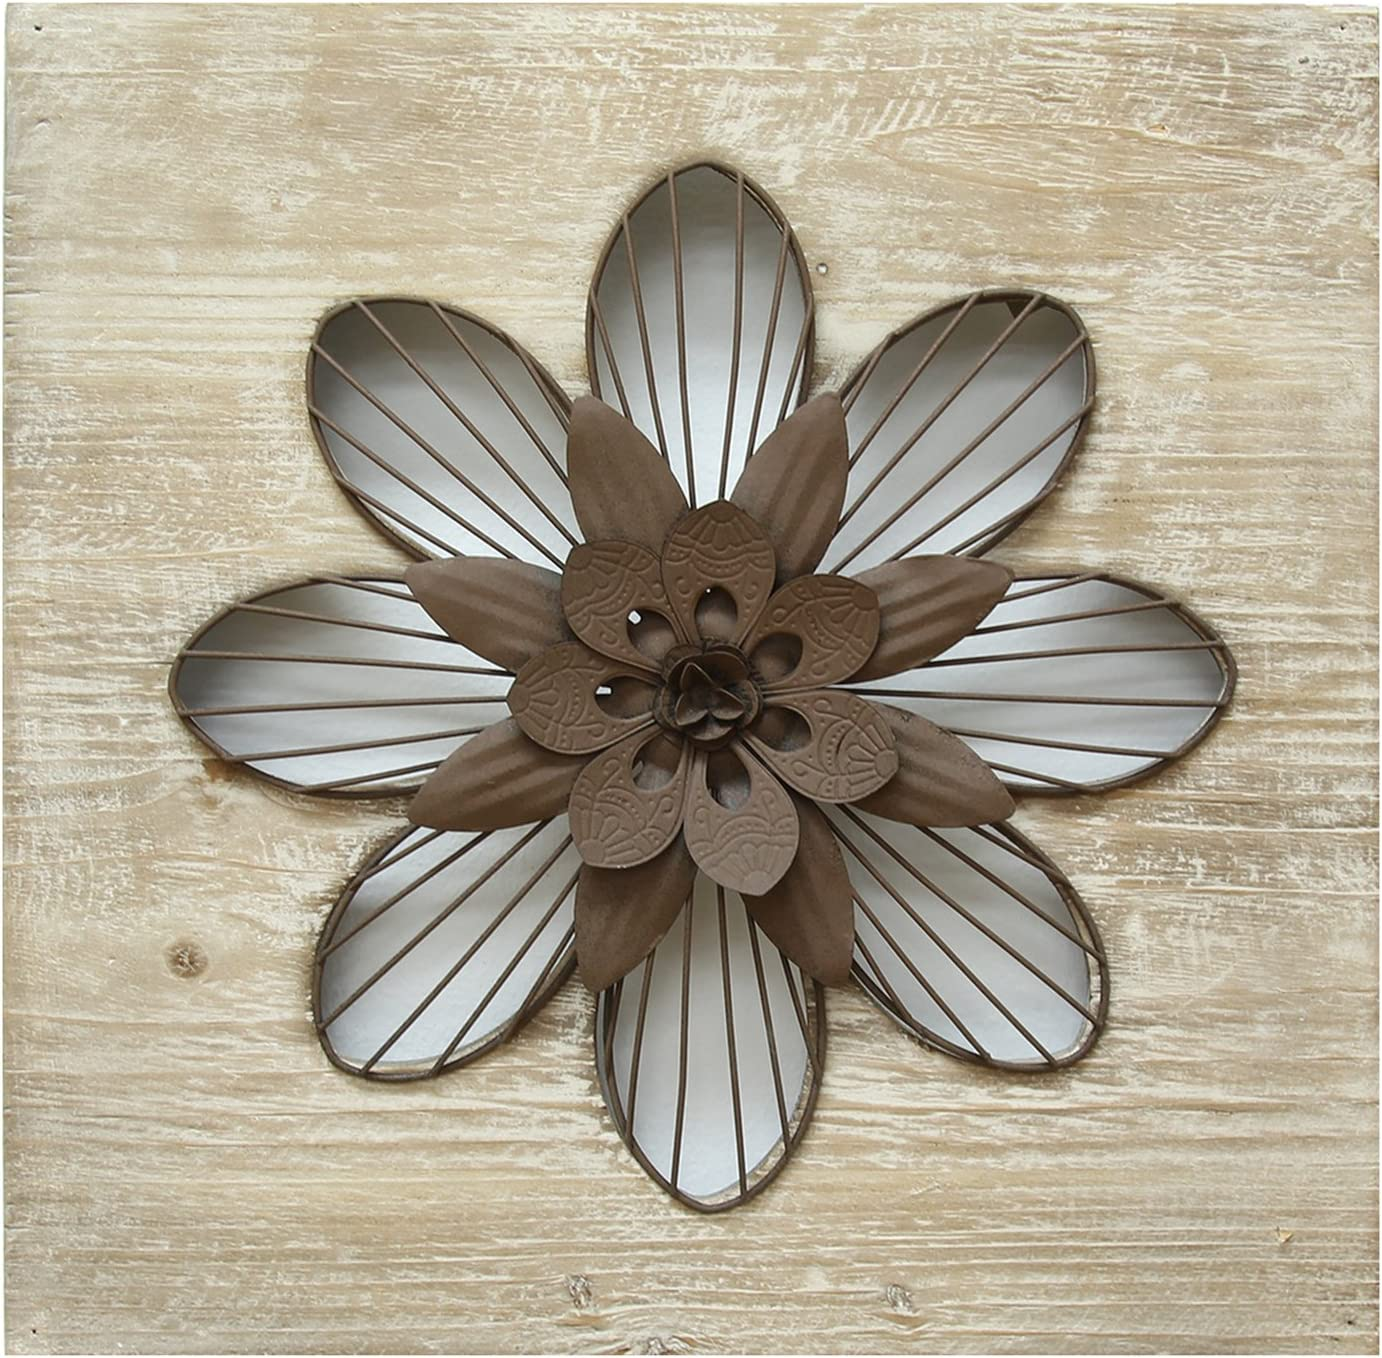 Stratton Home Decor SHD0189 Flower Wall Decor, Rustic, 14.00 W X 1.50 D X 14.00 H, Natural Wood/Espresso